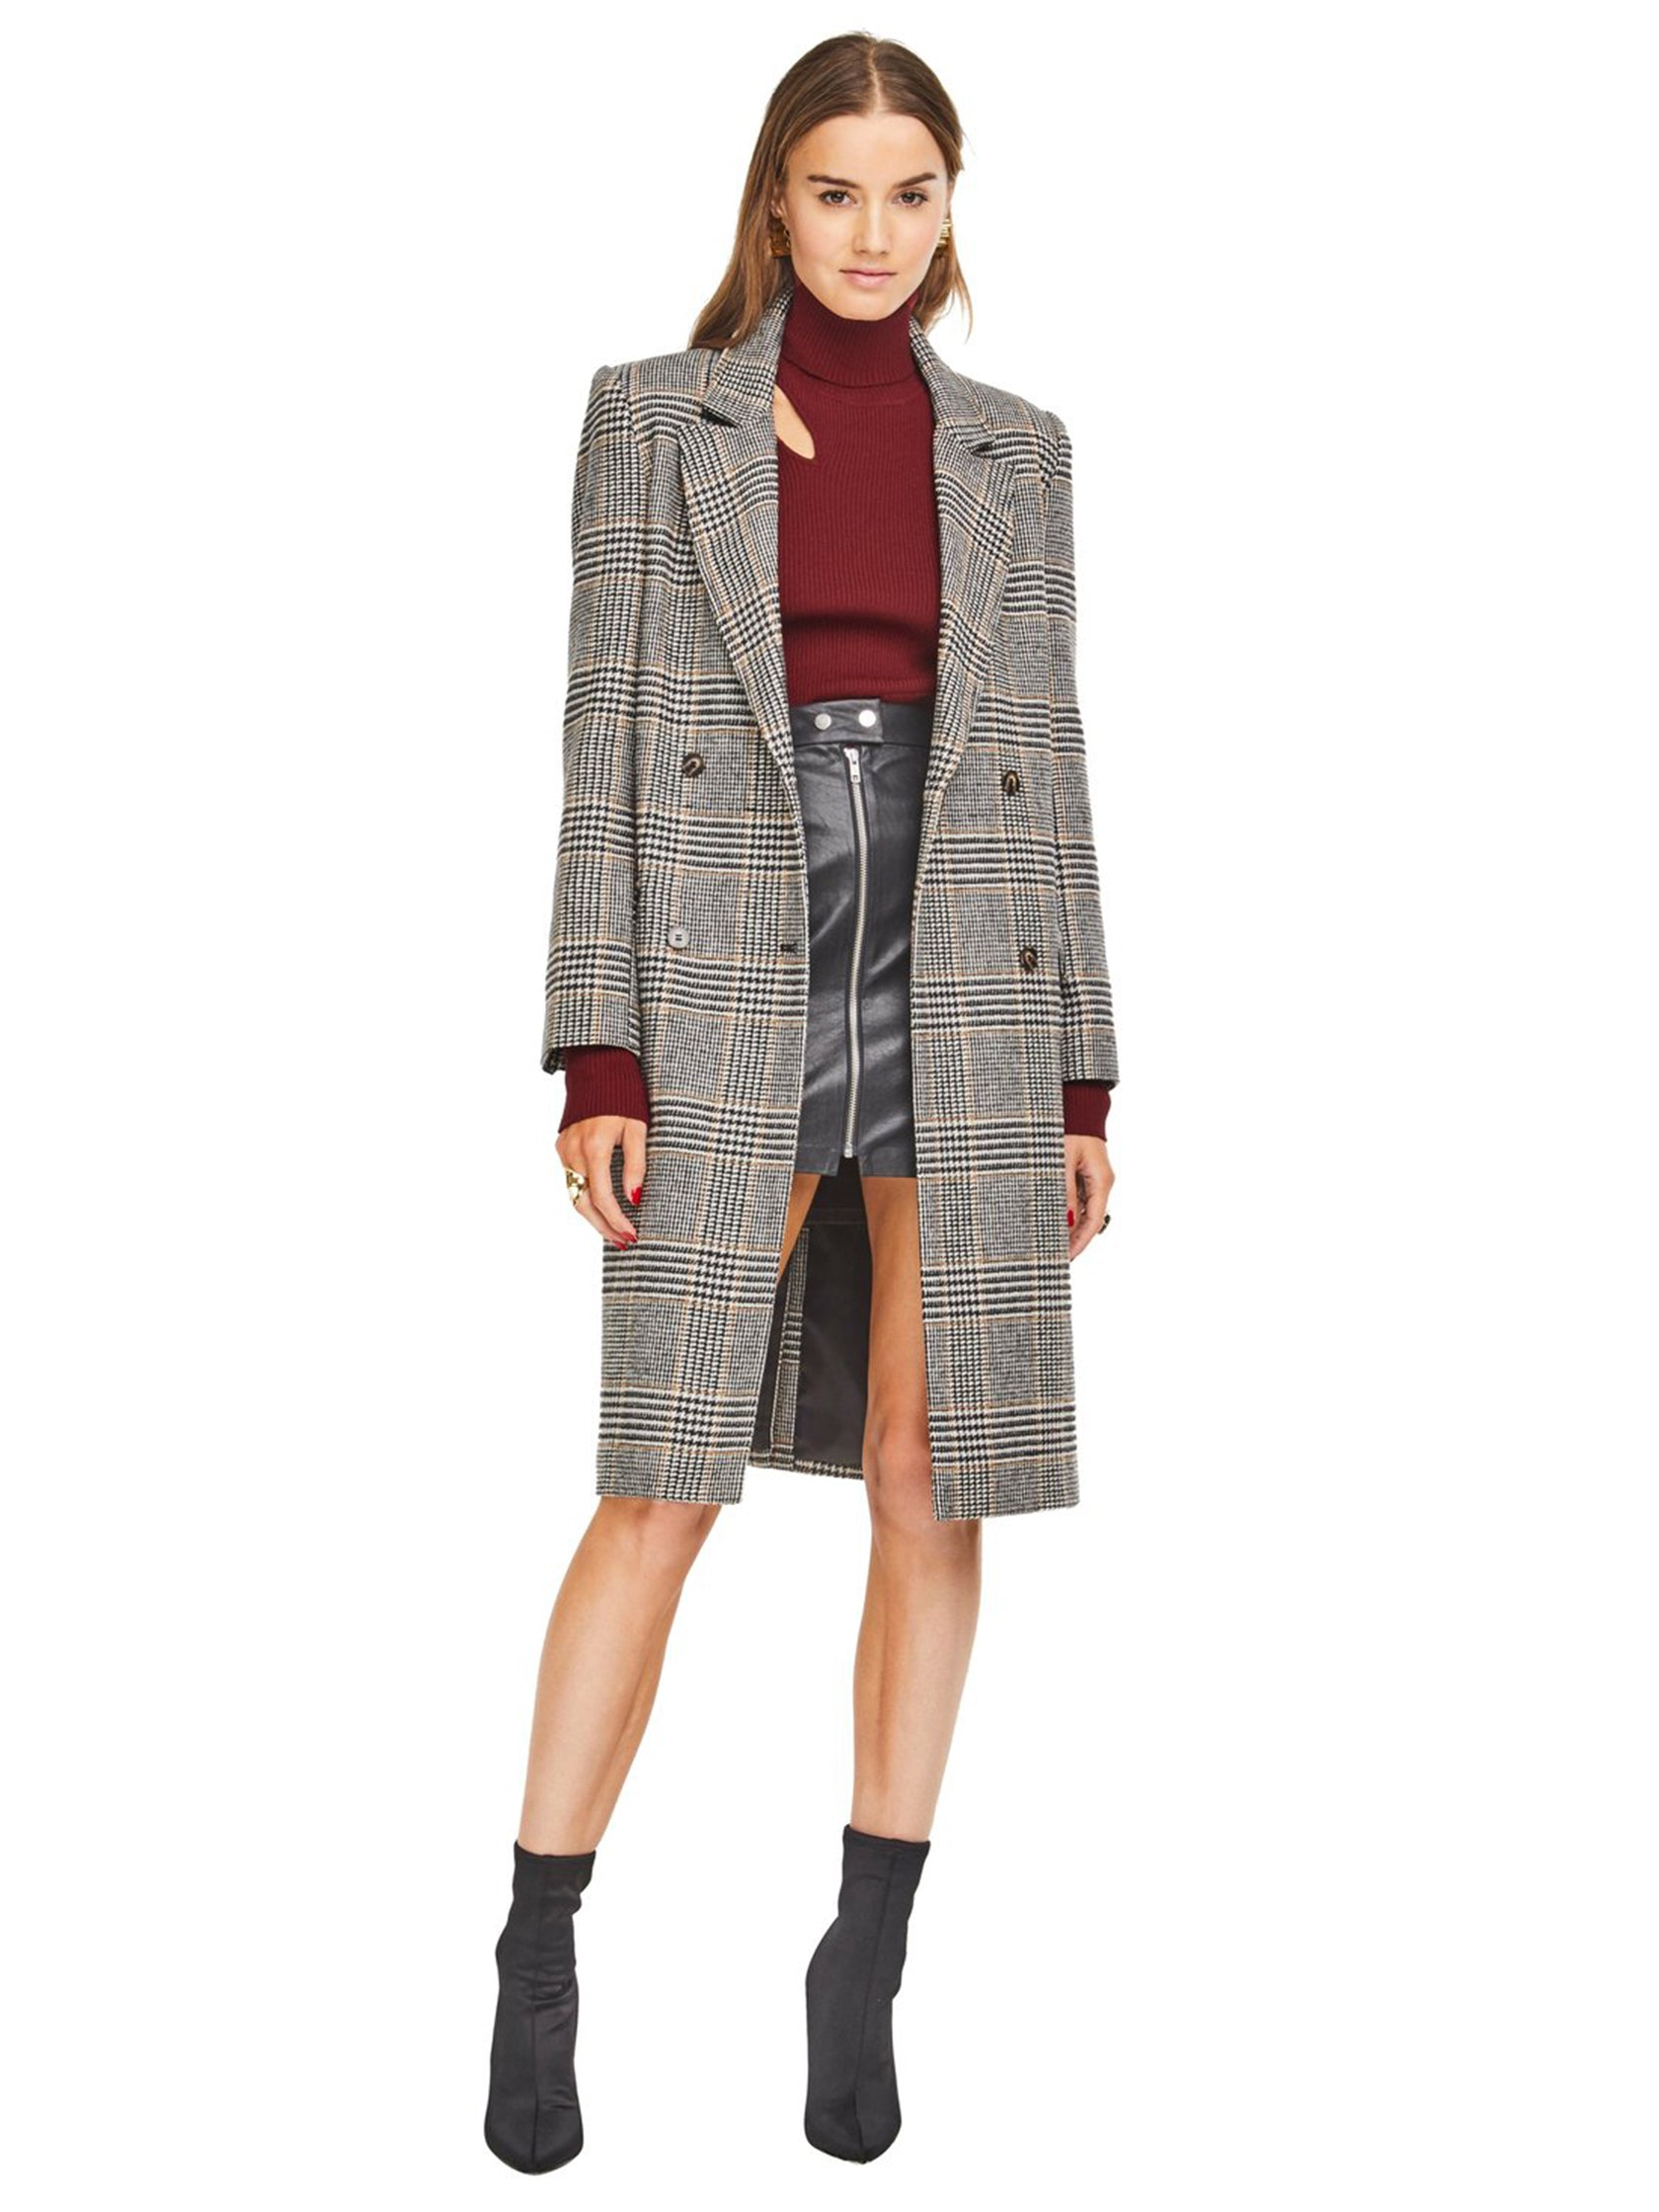 Girl outfit in a jacket rental from ASTR called Kensington Coat